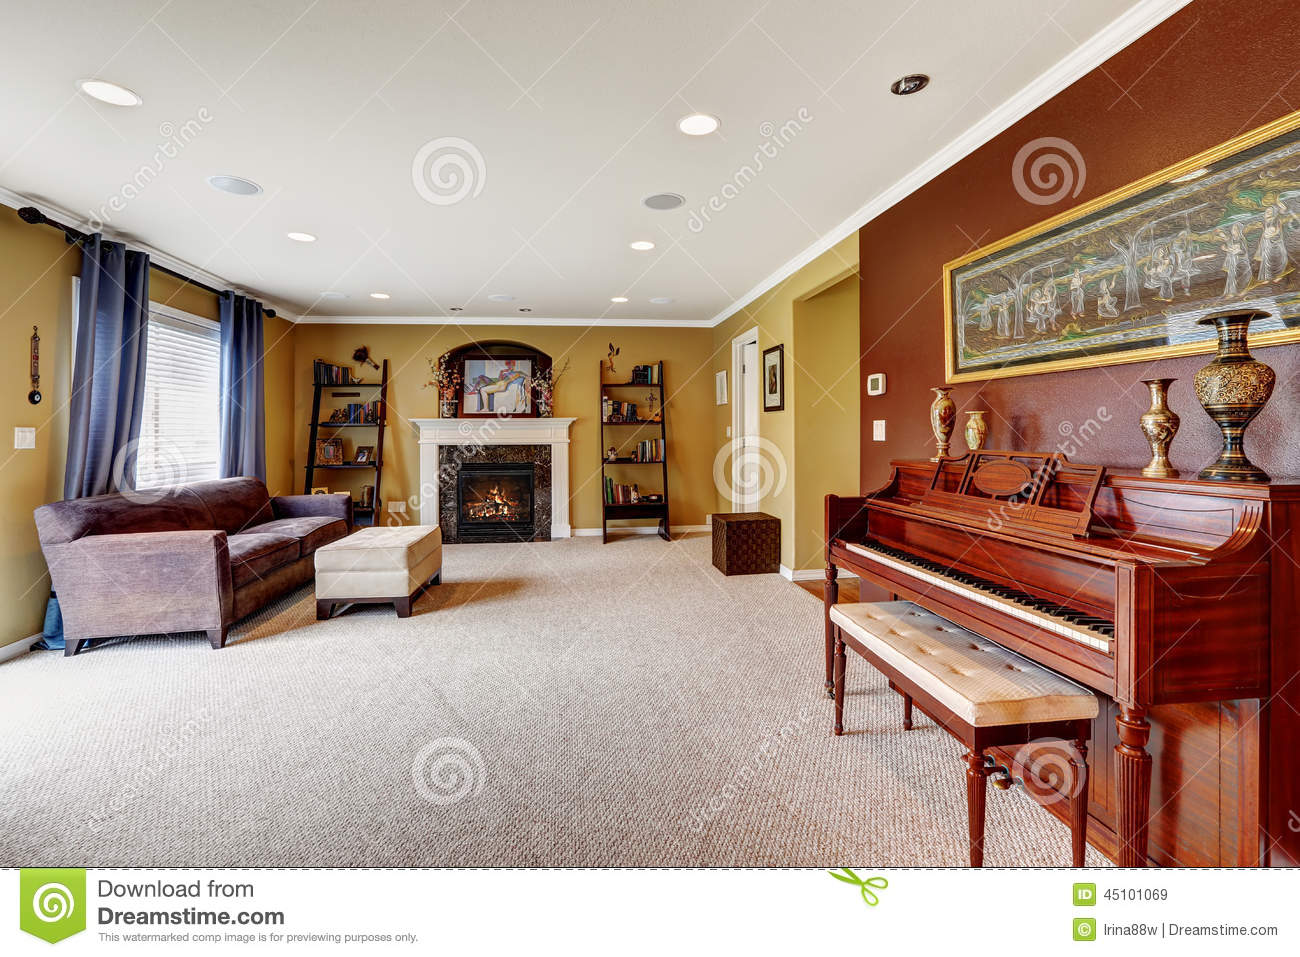 Living Room Interior With Burgundy Color Wall Stock Image - Image of ...